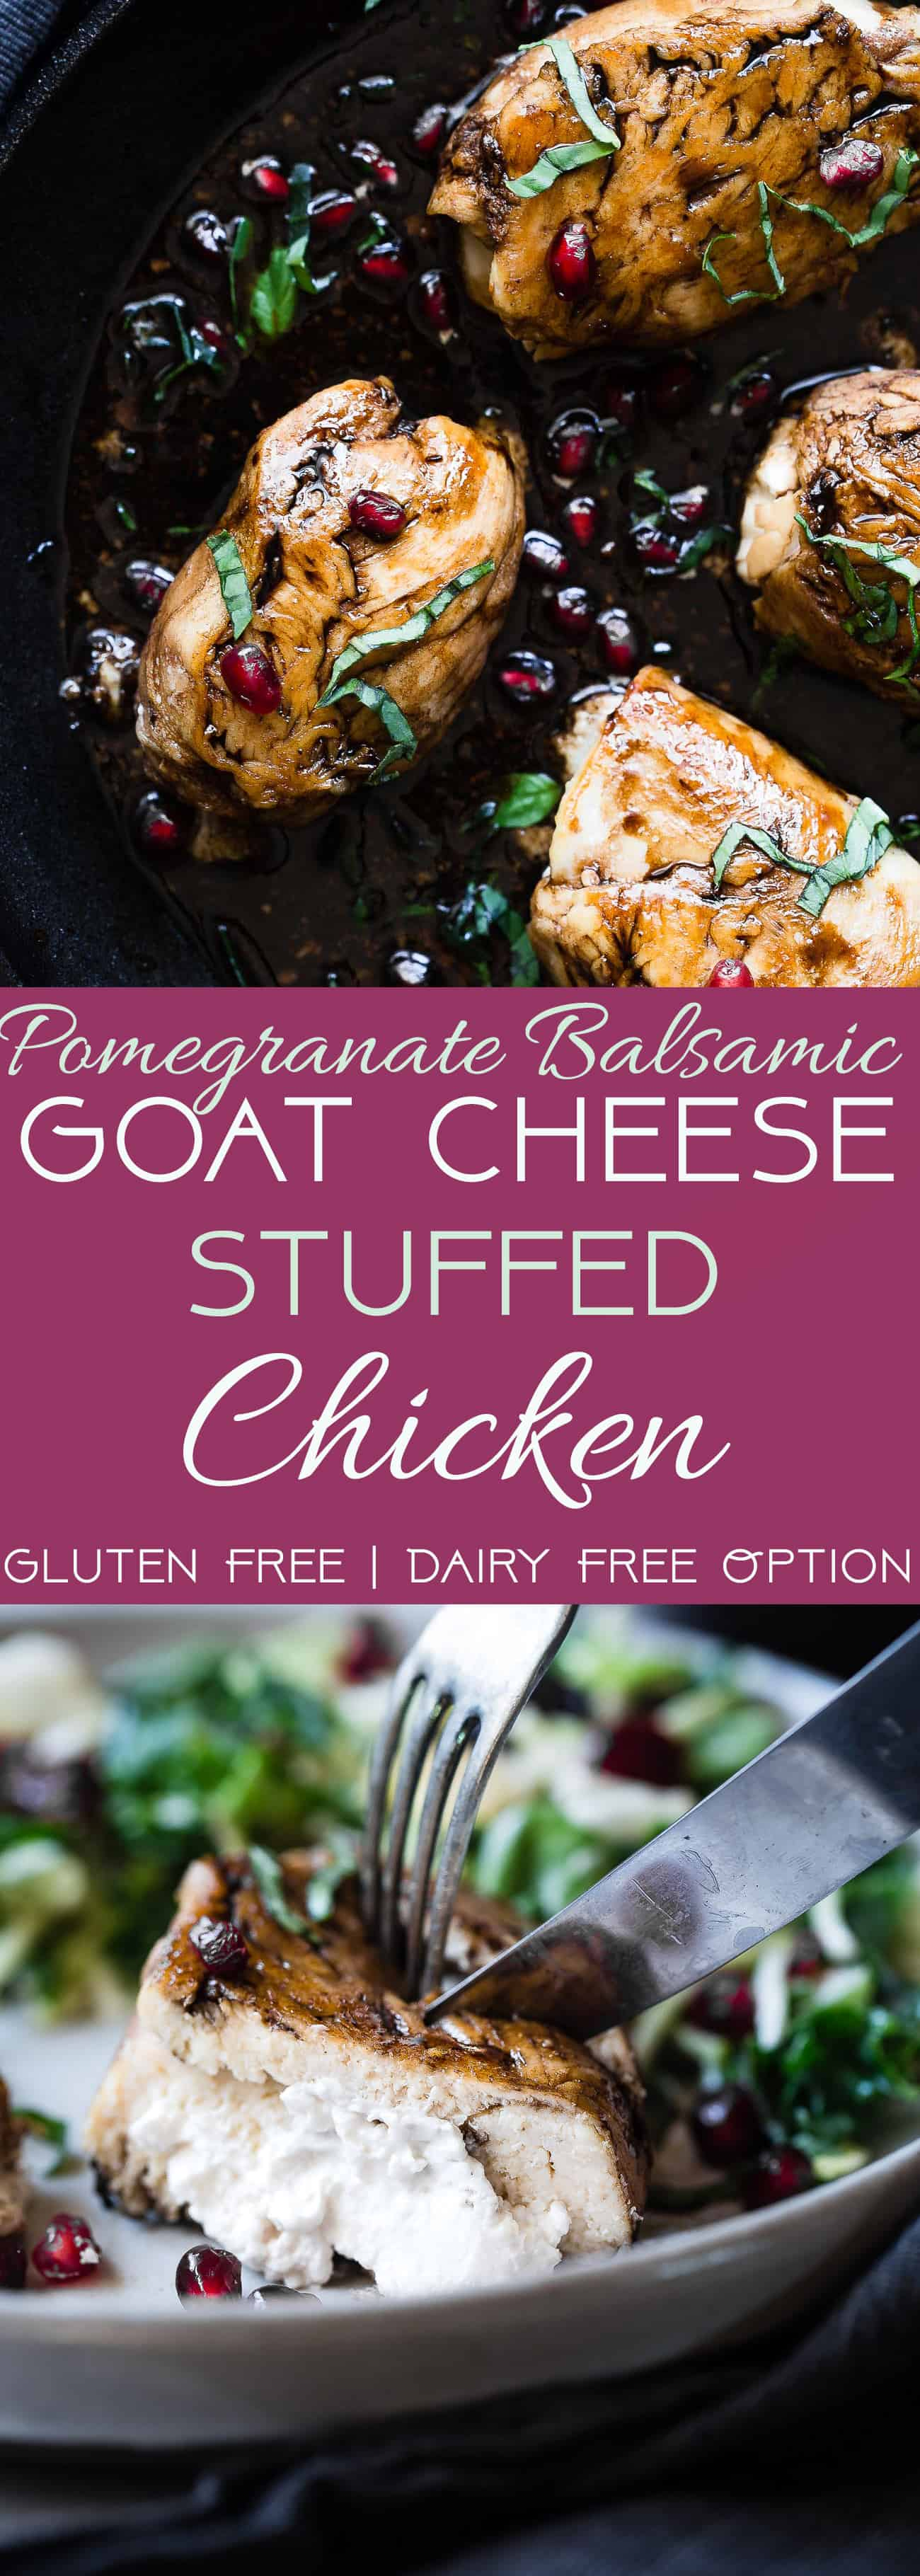 Balsamic Pomegranate Goat Cheese Stuffed Chicken - A healthy and gluten free dinner, loaded with superfoods! Both picky husbands and kids love this dinner and it feels like a fancy restaurant but is quick and easy enough for weeknights! | Foodfaithfitness.com | @FoodFaithFit | balsamic baked chicken. healthy balsamic chicken. balsamic glazed chicken. healthy chicken dinners. quick and easy chicken dinners